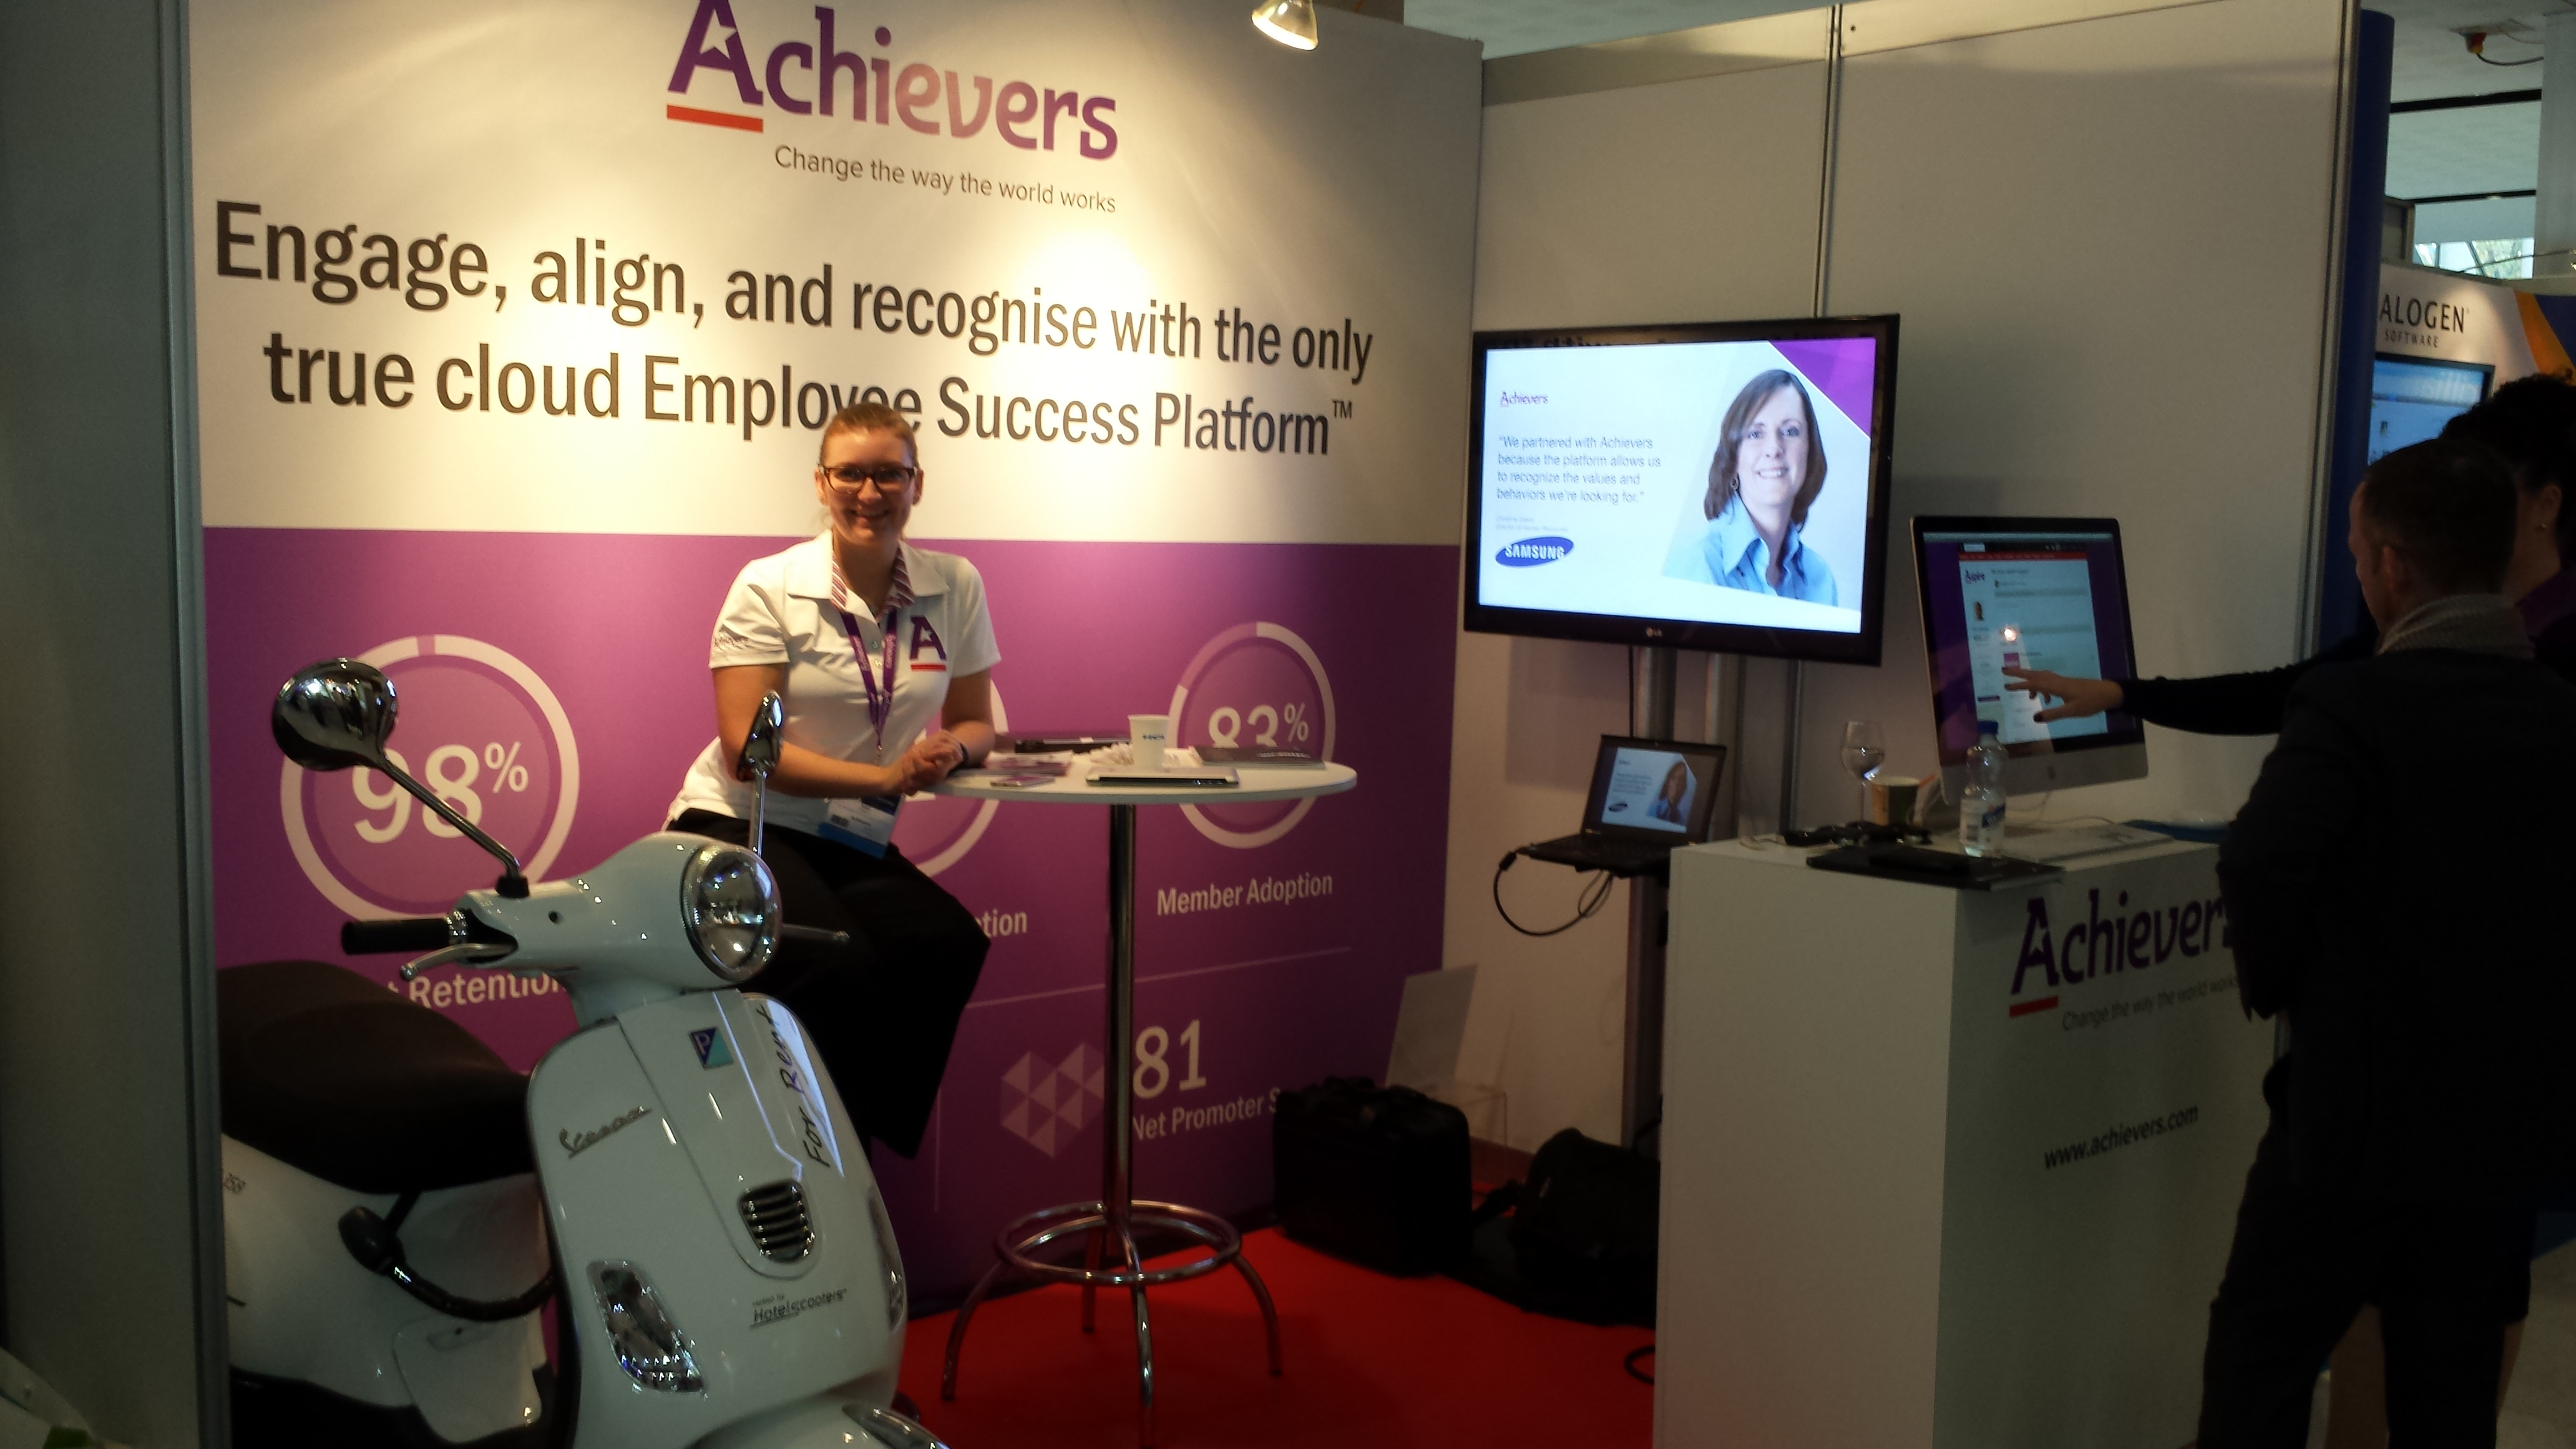 Katie-Paterson-@-Achievers-booth-@-HR-Tech-Europe-2014